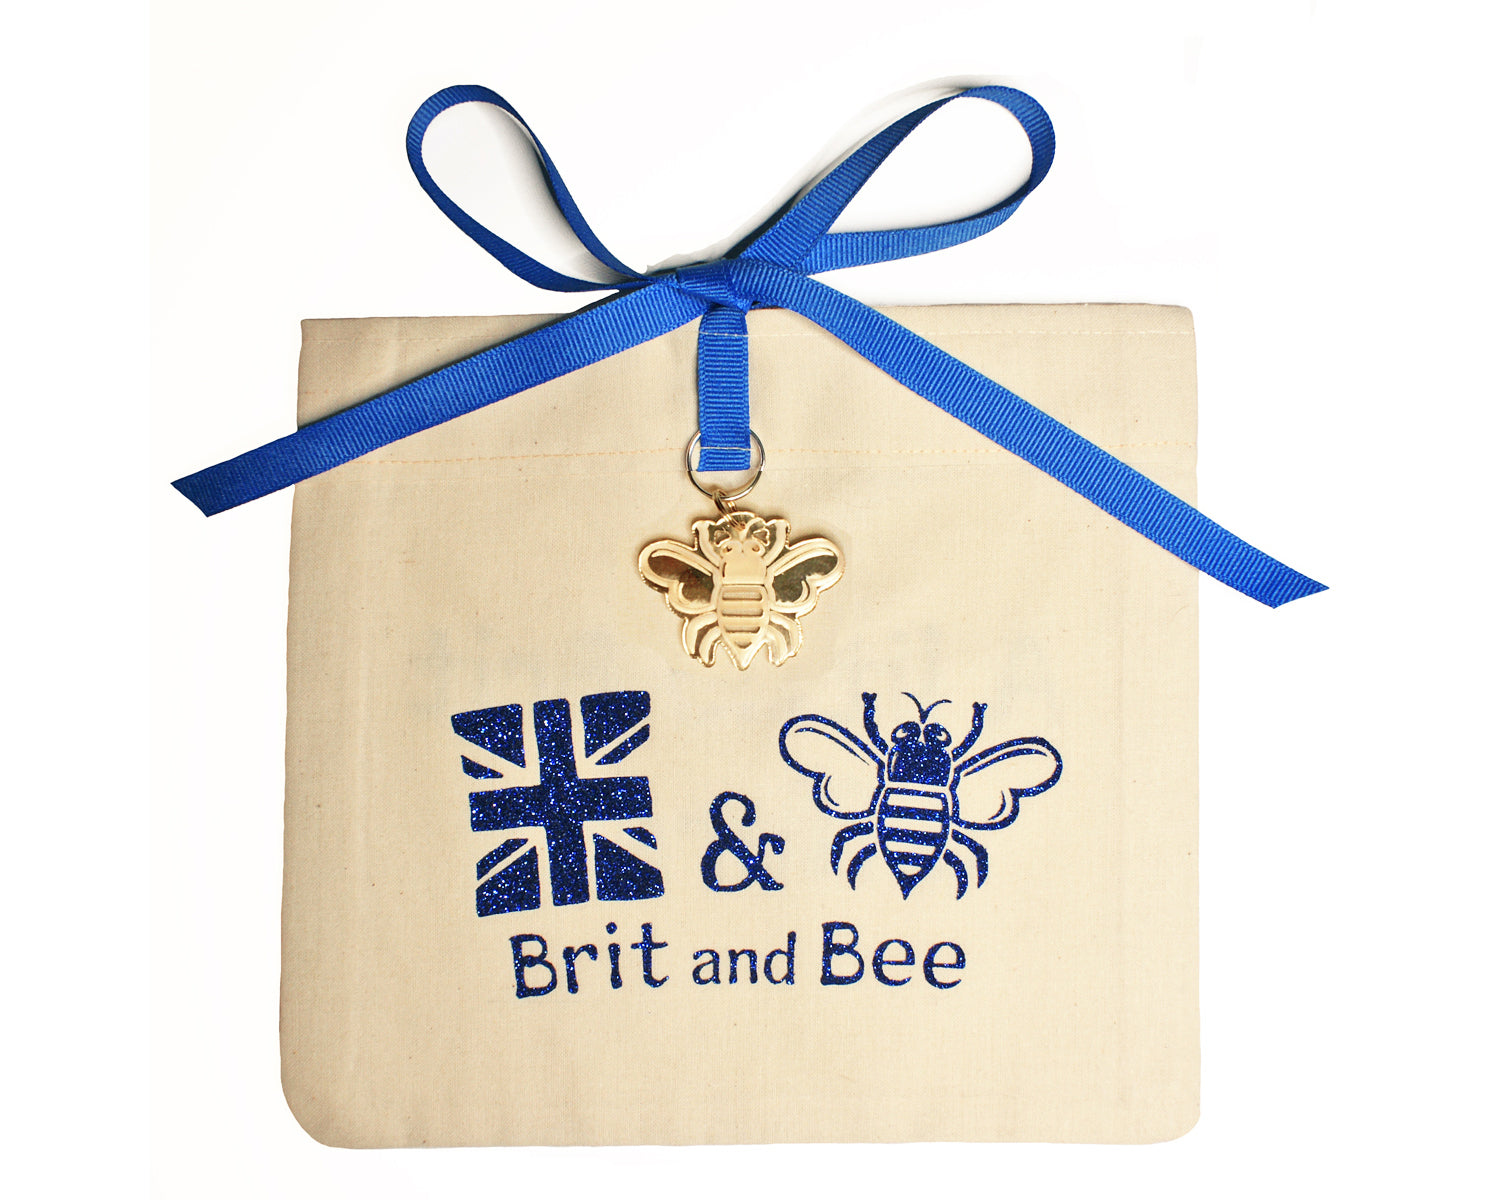 Brit and Bee Logo Ornament - Gift Bag